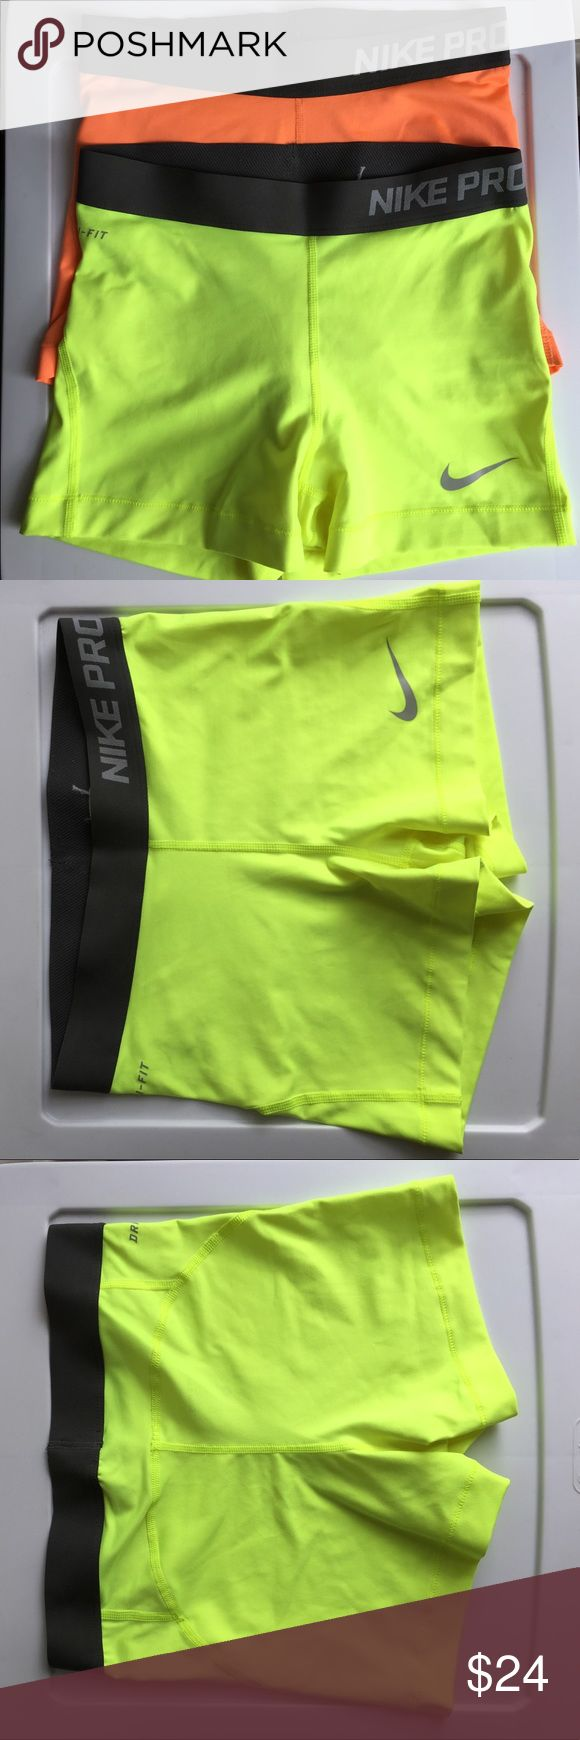 Lot of 2 Nike Pro Dri-Fit spandex shorts Two bright super cute Nike spandex shorts in like-new condition. Band has the Nike Pro logo. I cut the paper tags out inside the yellow pair but the fabric printed tag is still intact with all info. Both are size small. Nike Shorts